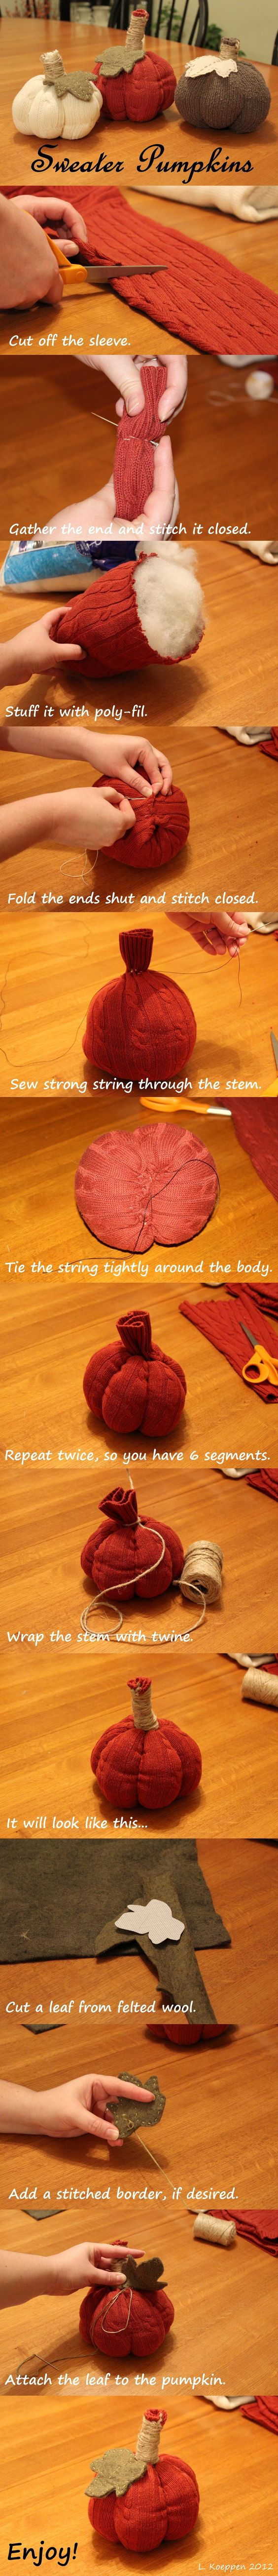 Here's a picture tutorial for sweater pumpkins. They're so simple to make! I found the sweaters at thrift stores, and the other supplies at Hobby Lobby. I've made a basketful of these - How many is too many? :)